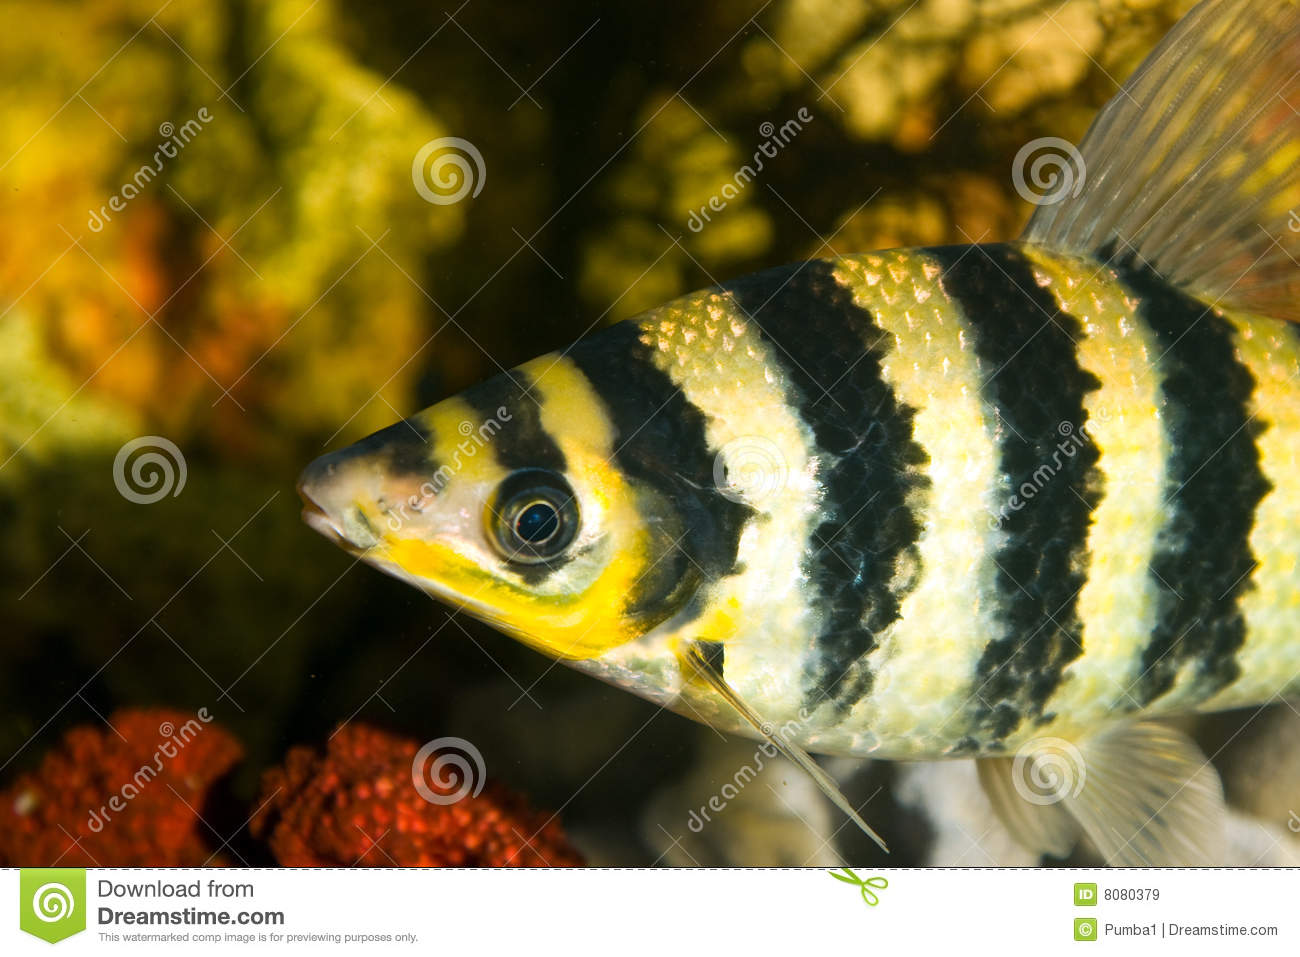 Black and yellow freshwater aquarium fish - Yellow Black Striped Fish In An Aquarium Royalty Free Stock Images